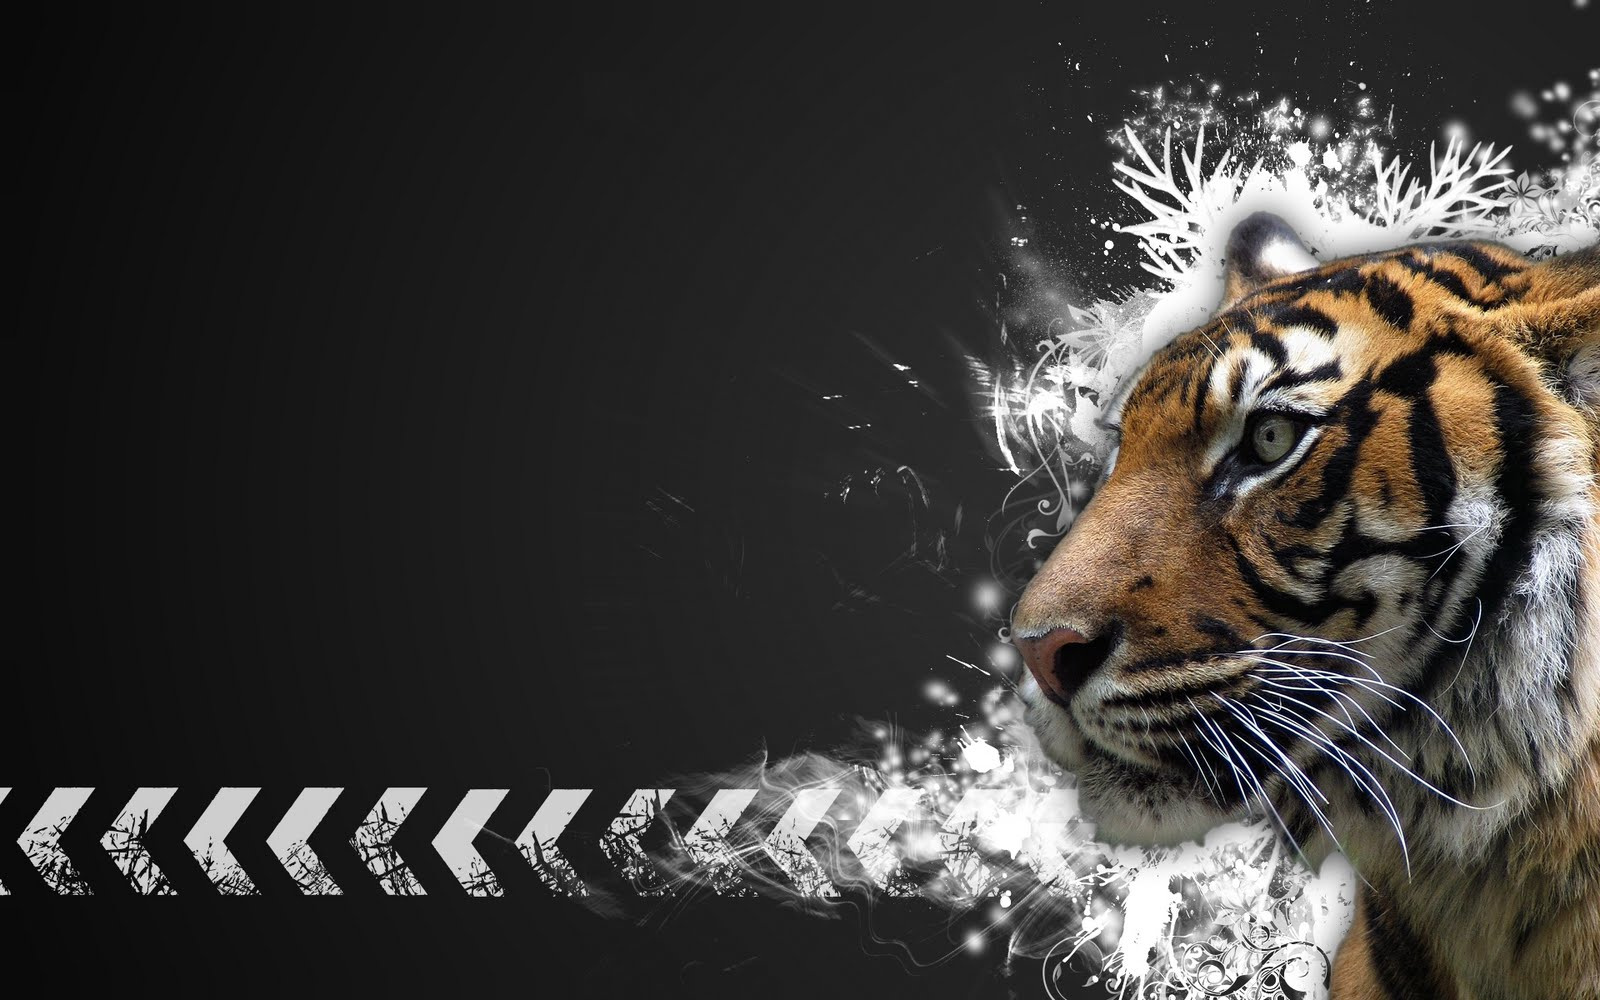 http://2.bp.blogspot.com/-LtmFtjYe4ik/T9FwQTNiwgI/AAAAAAAABMU/8iR59zjIyD4/s1600/tiger_wallpapers_hd_Tiger_Vector_Widescreen_HD_Wallpaper.jpg